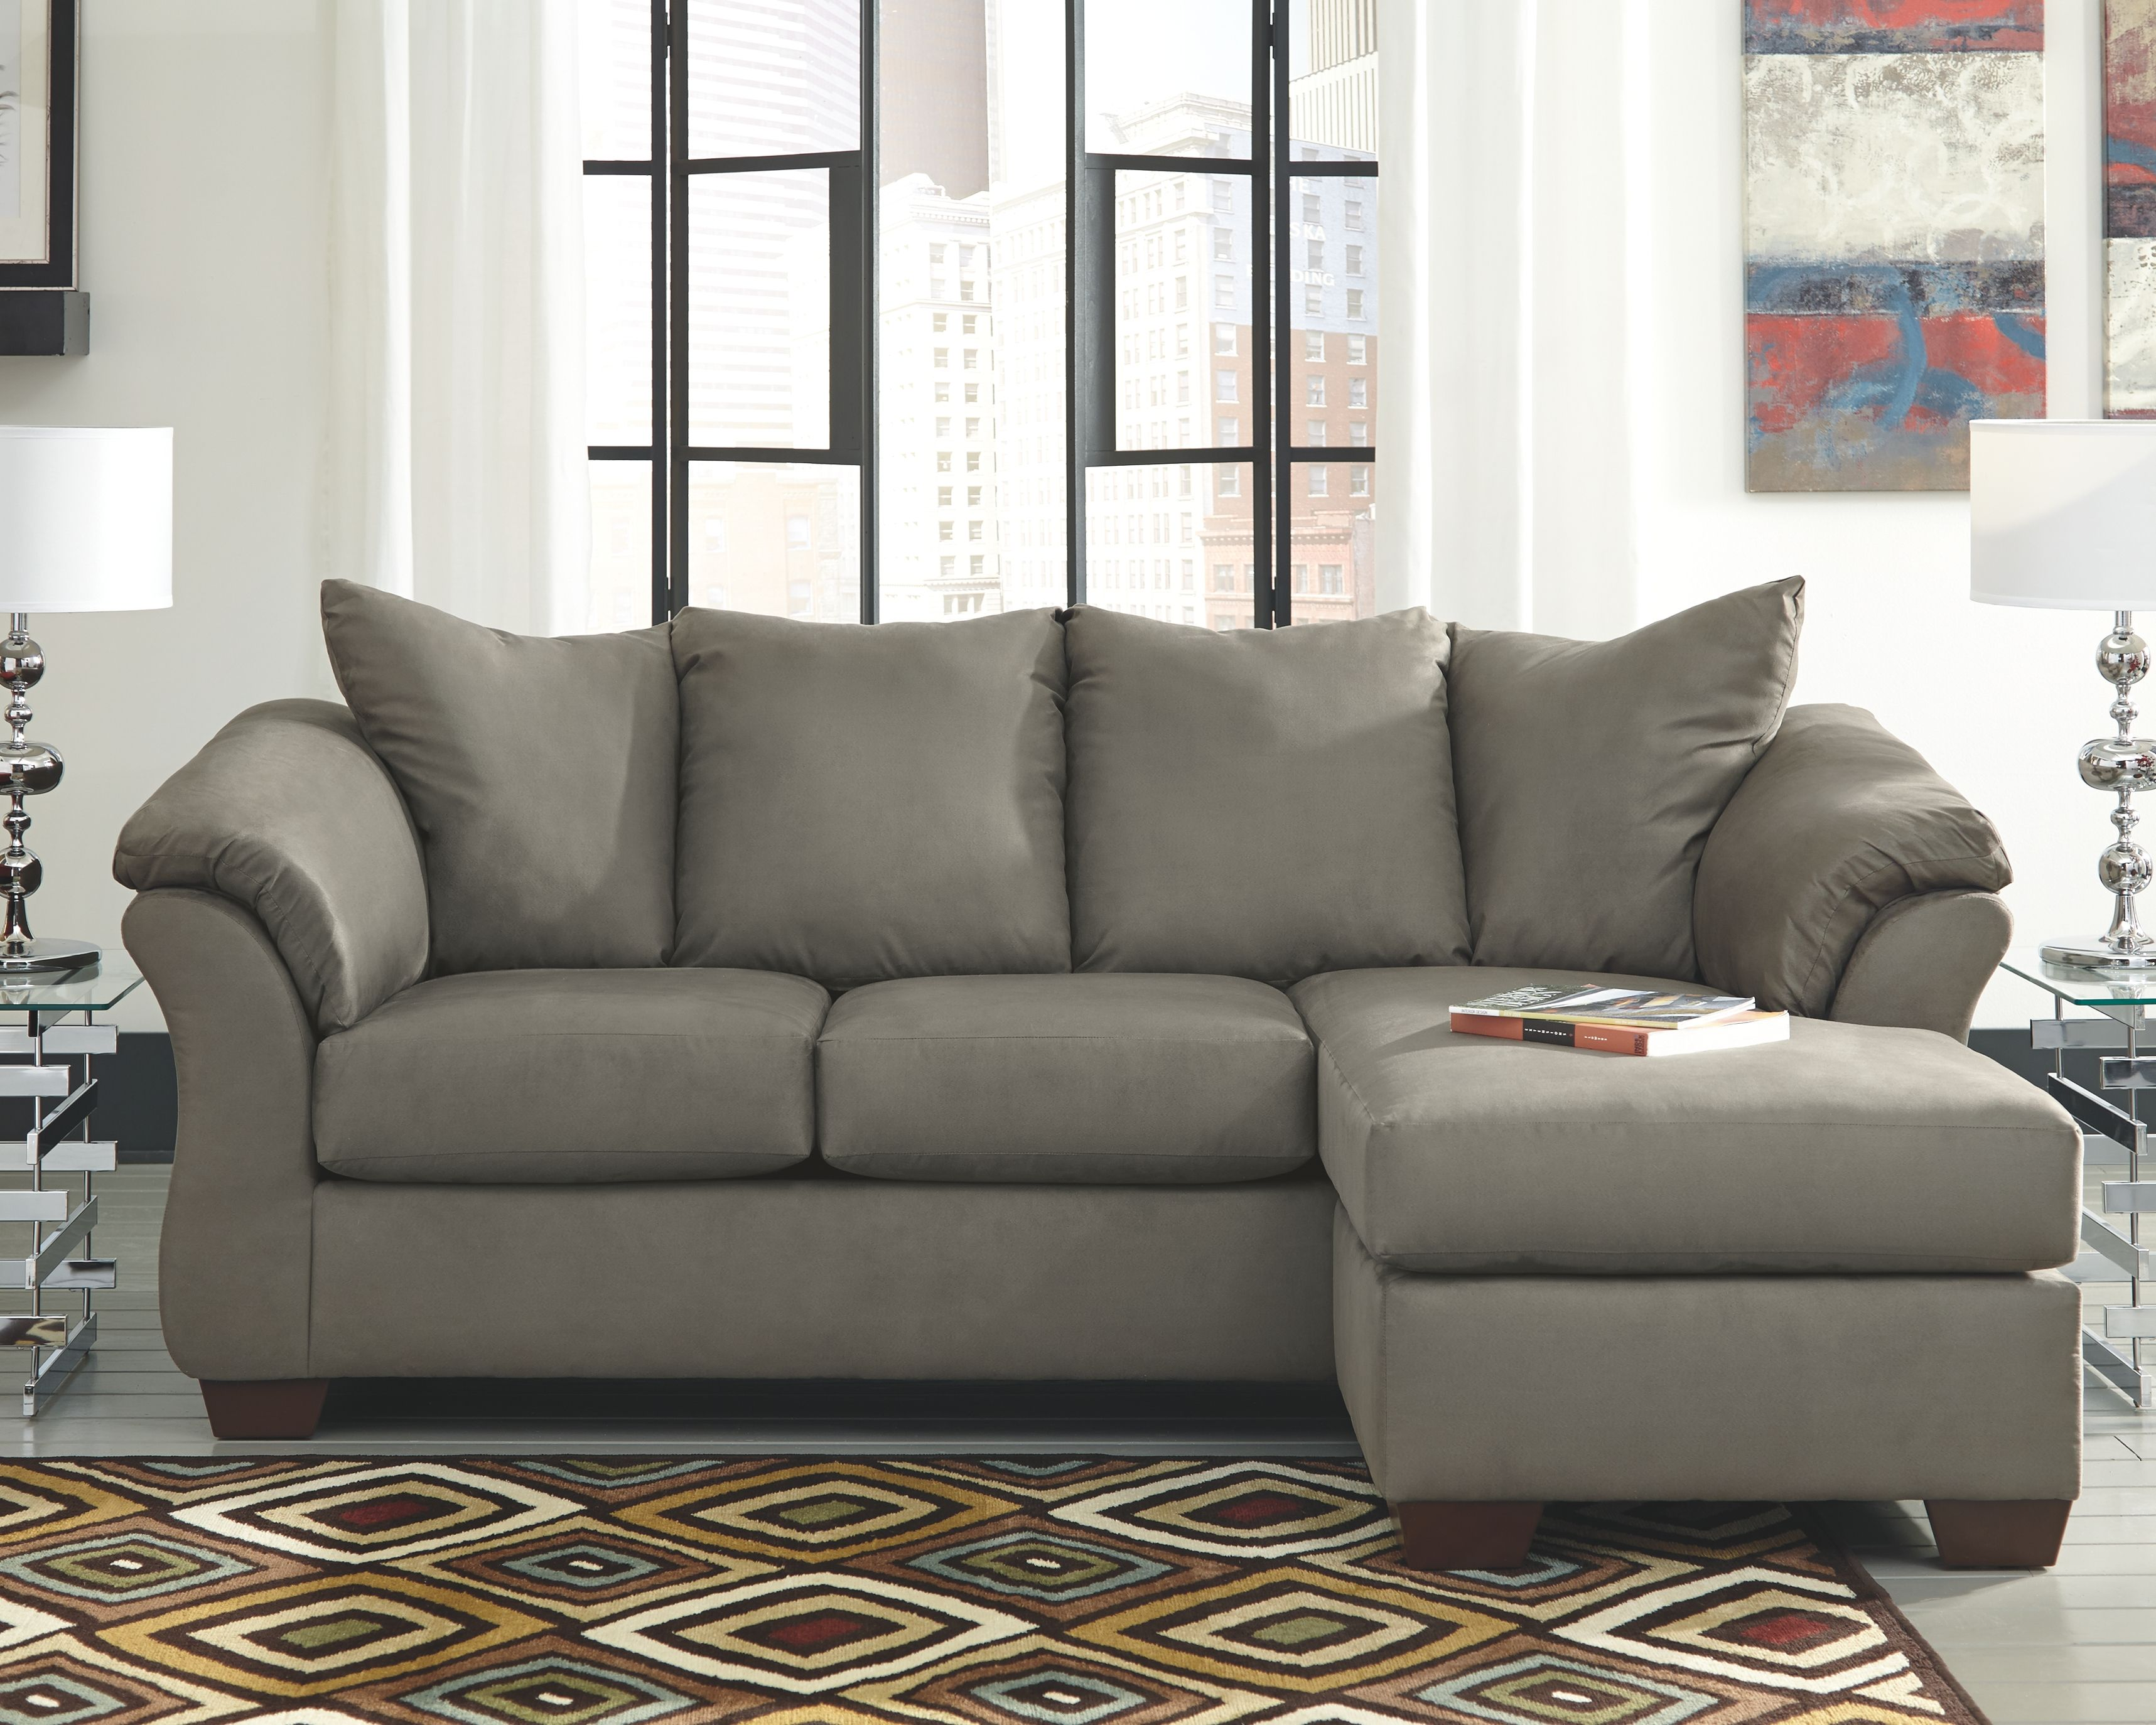 Darcy Sofa Chaise Cobblestone Sectional Sofa With Chaise